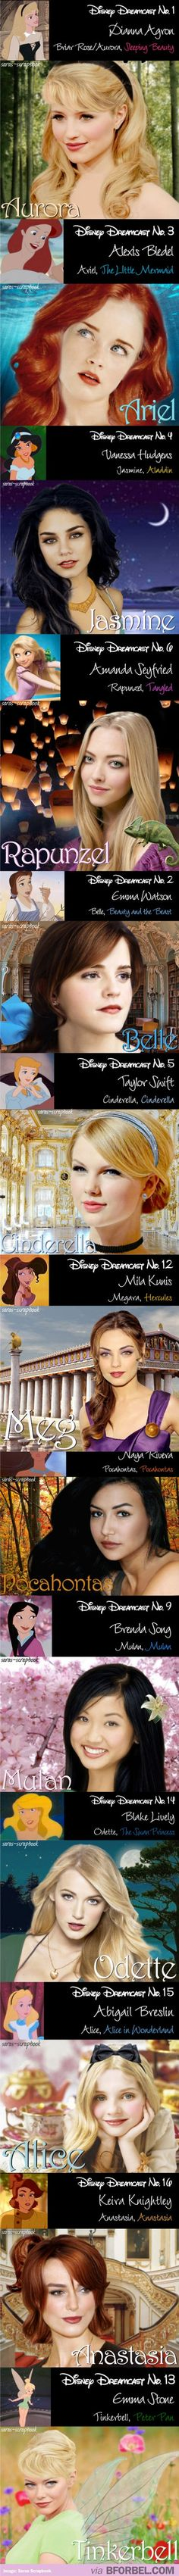 Disney Princess' in real life today. These are goooood.